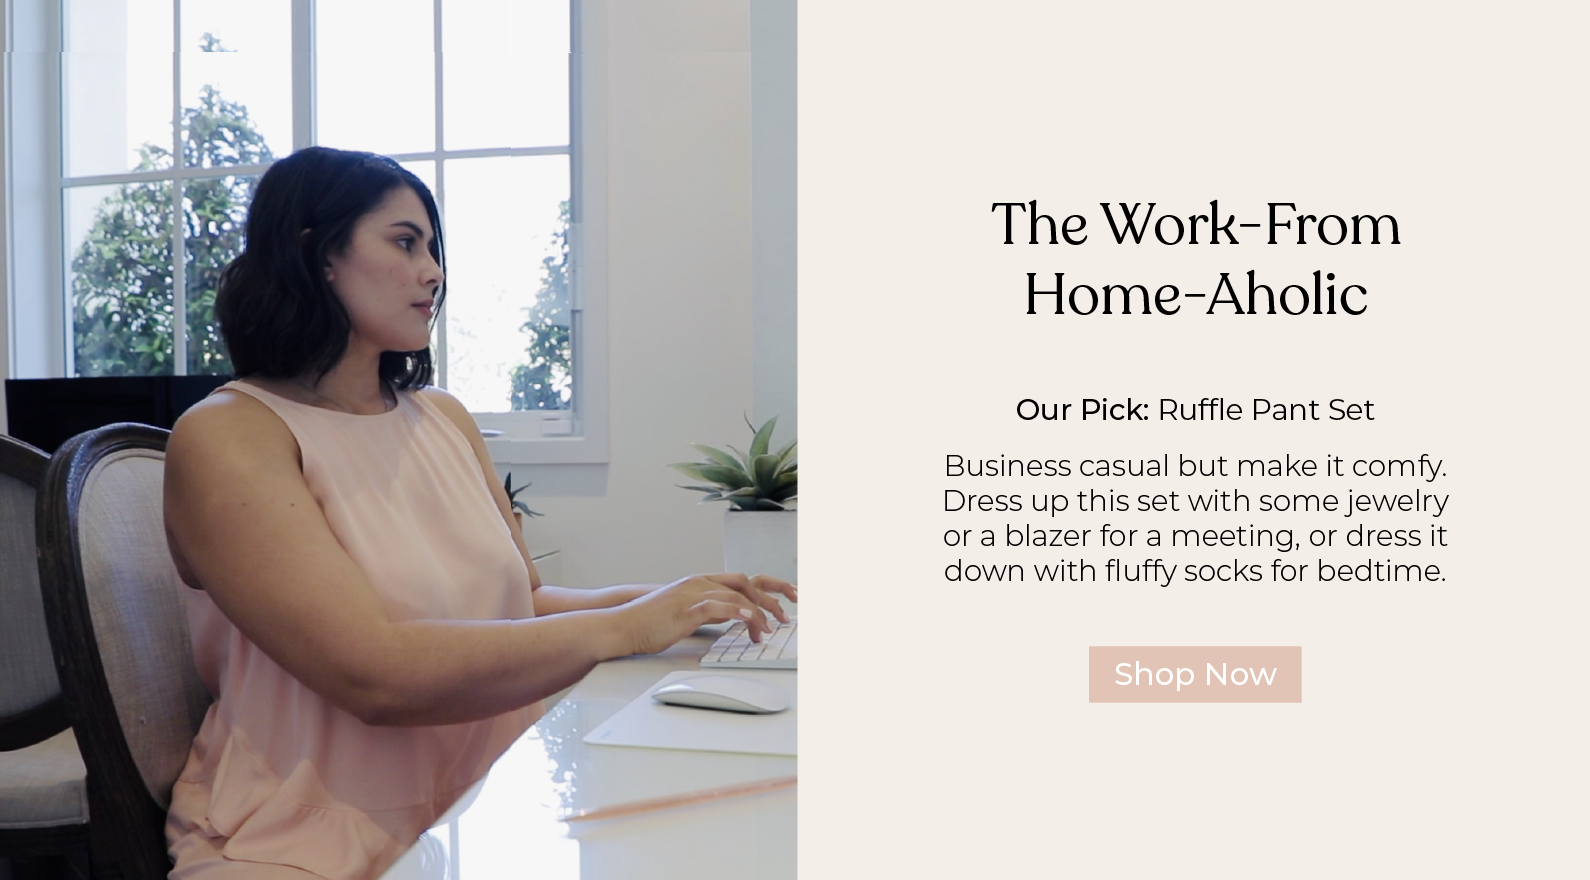 Half Asleep Sleepwear - The perfect gift for working from home